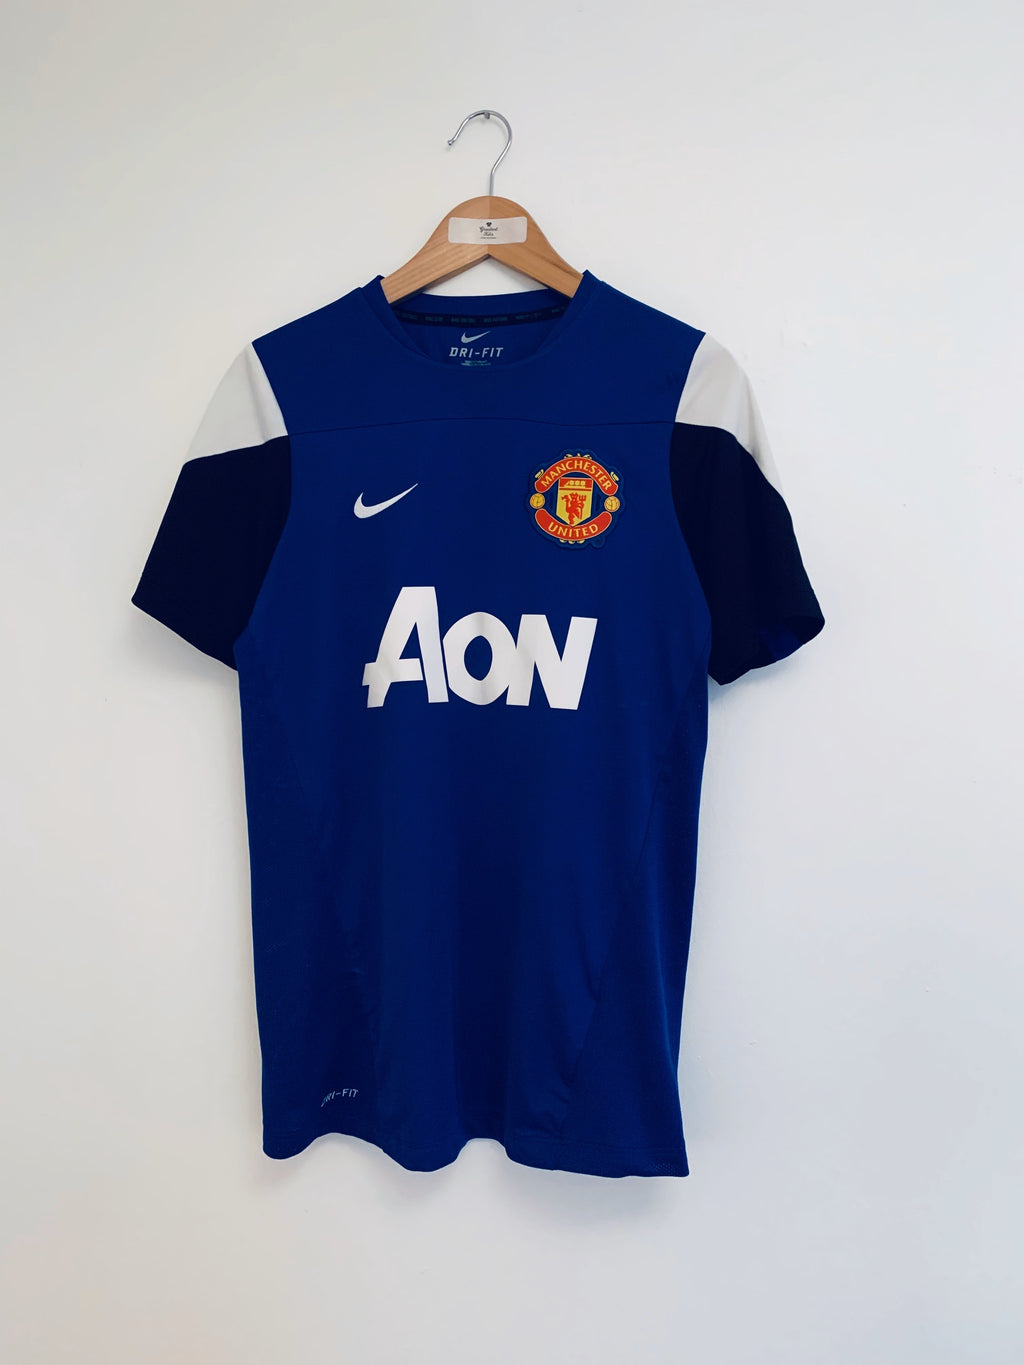 2013/14 Manchester United Training Shirt (M) 9/10